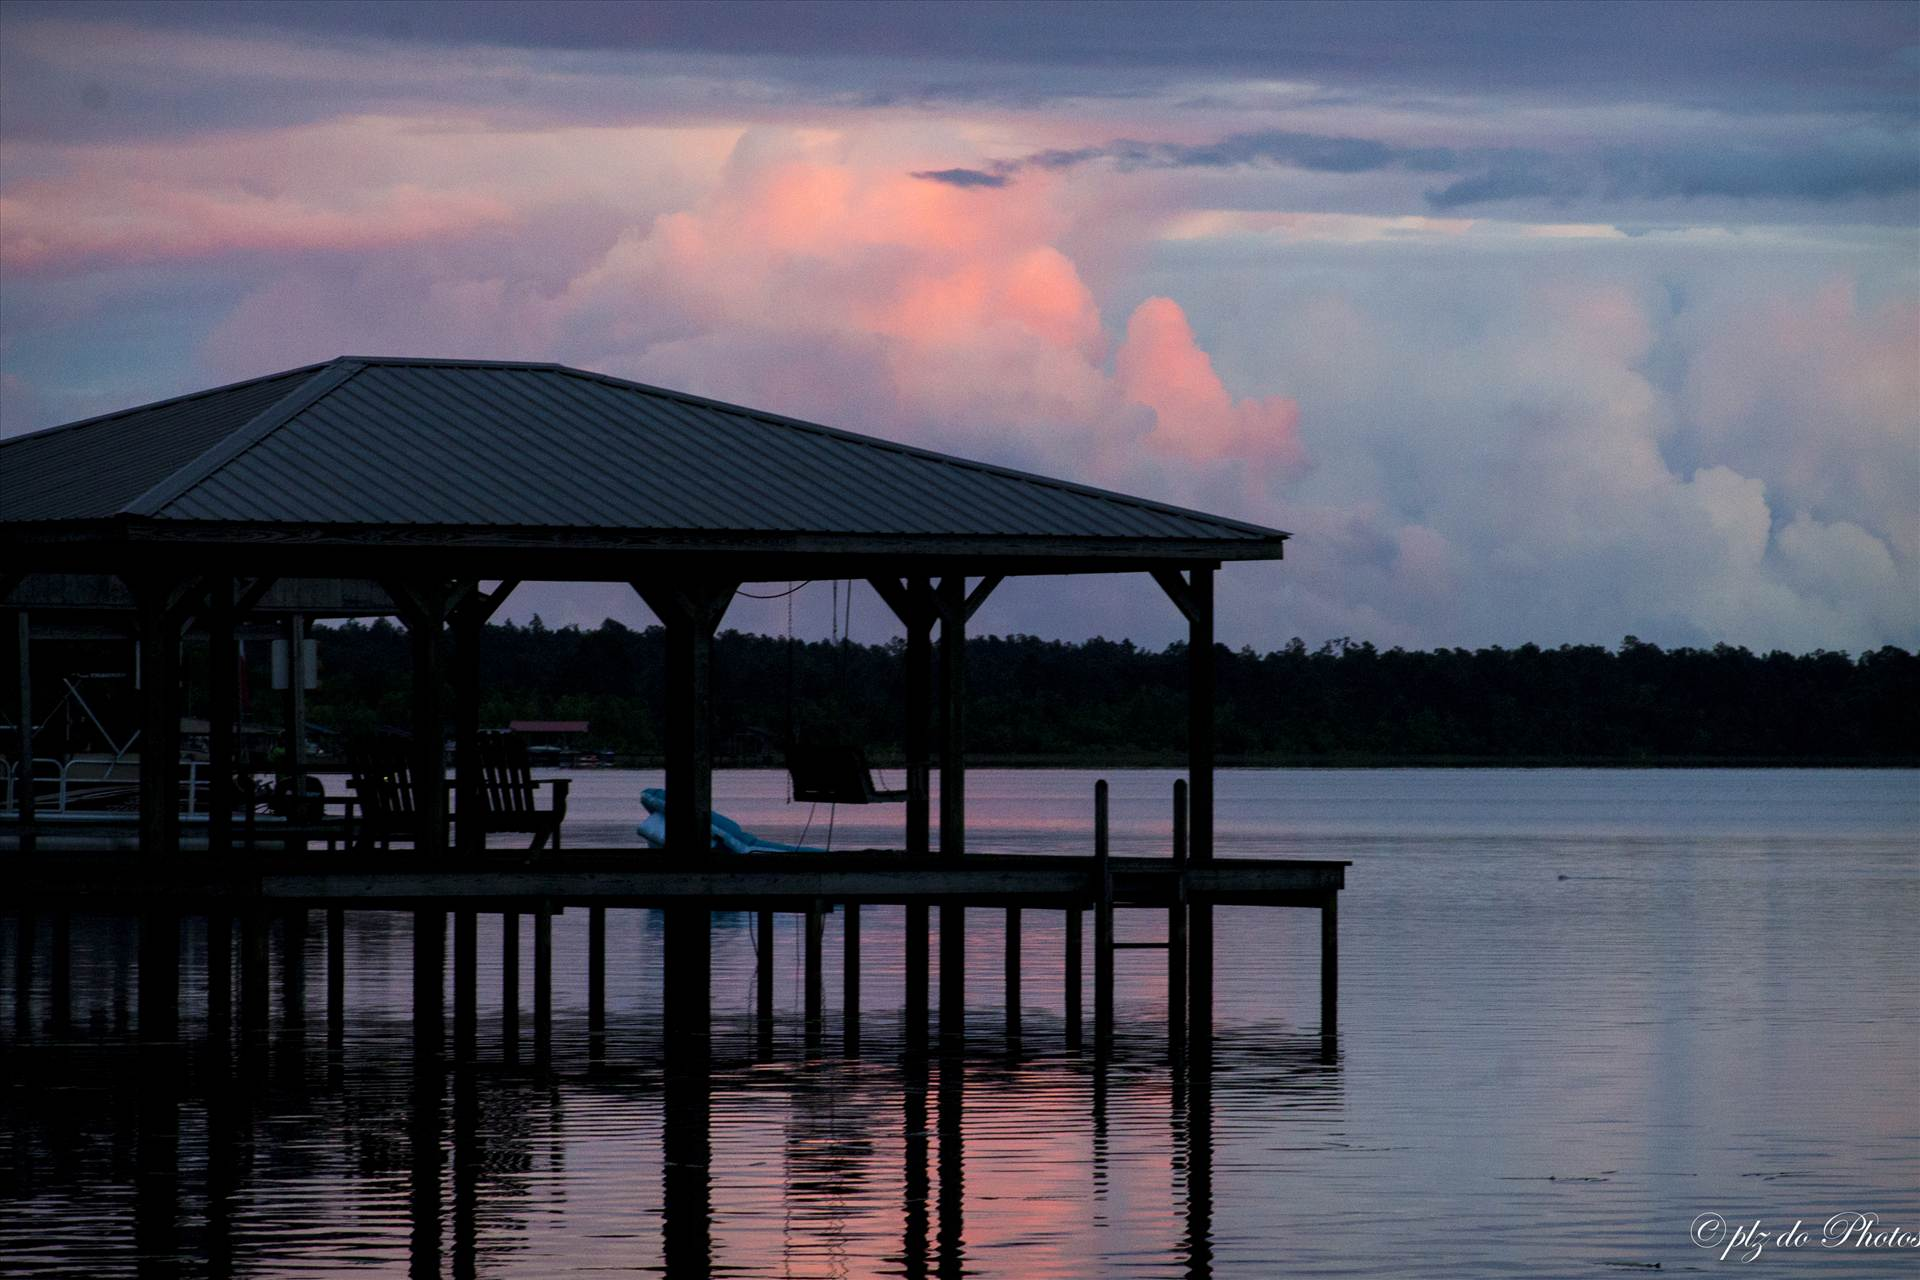 Red Sky at Night - Sunset at Lake Waccamaw, NC by Patricia Zyzyk